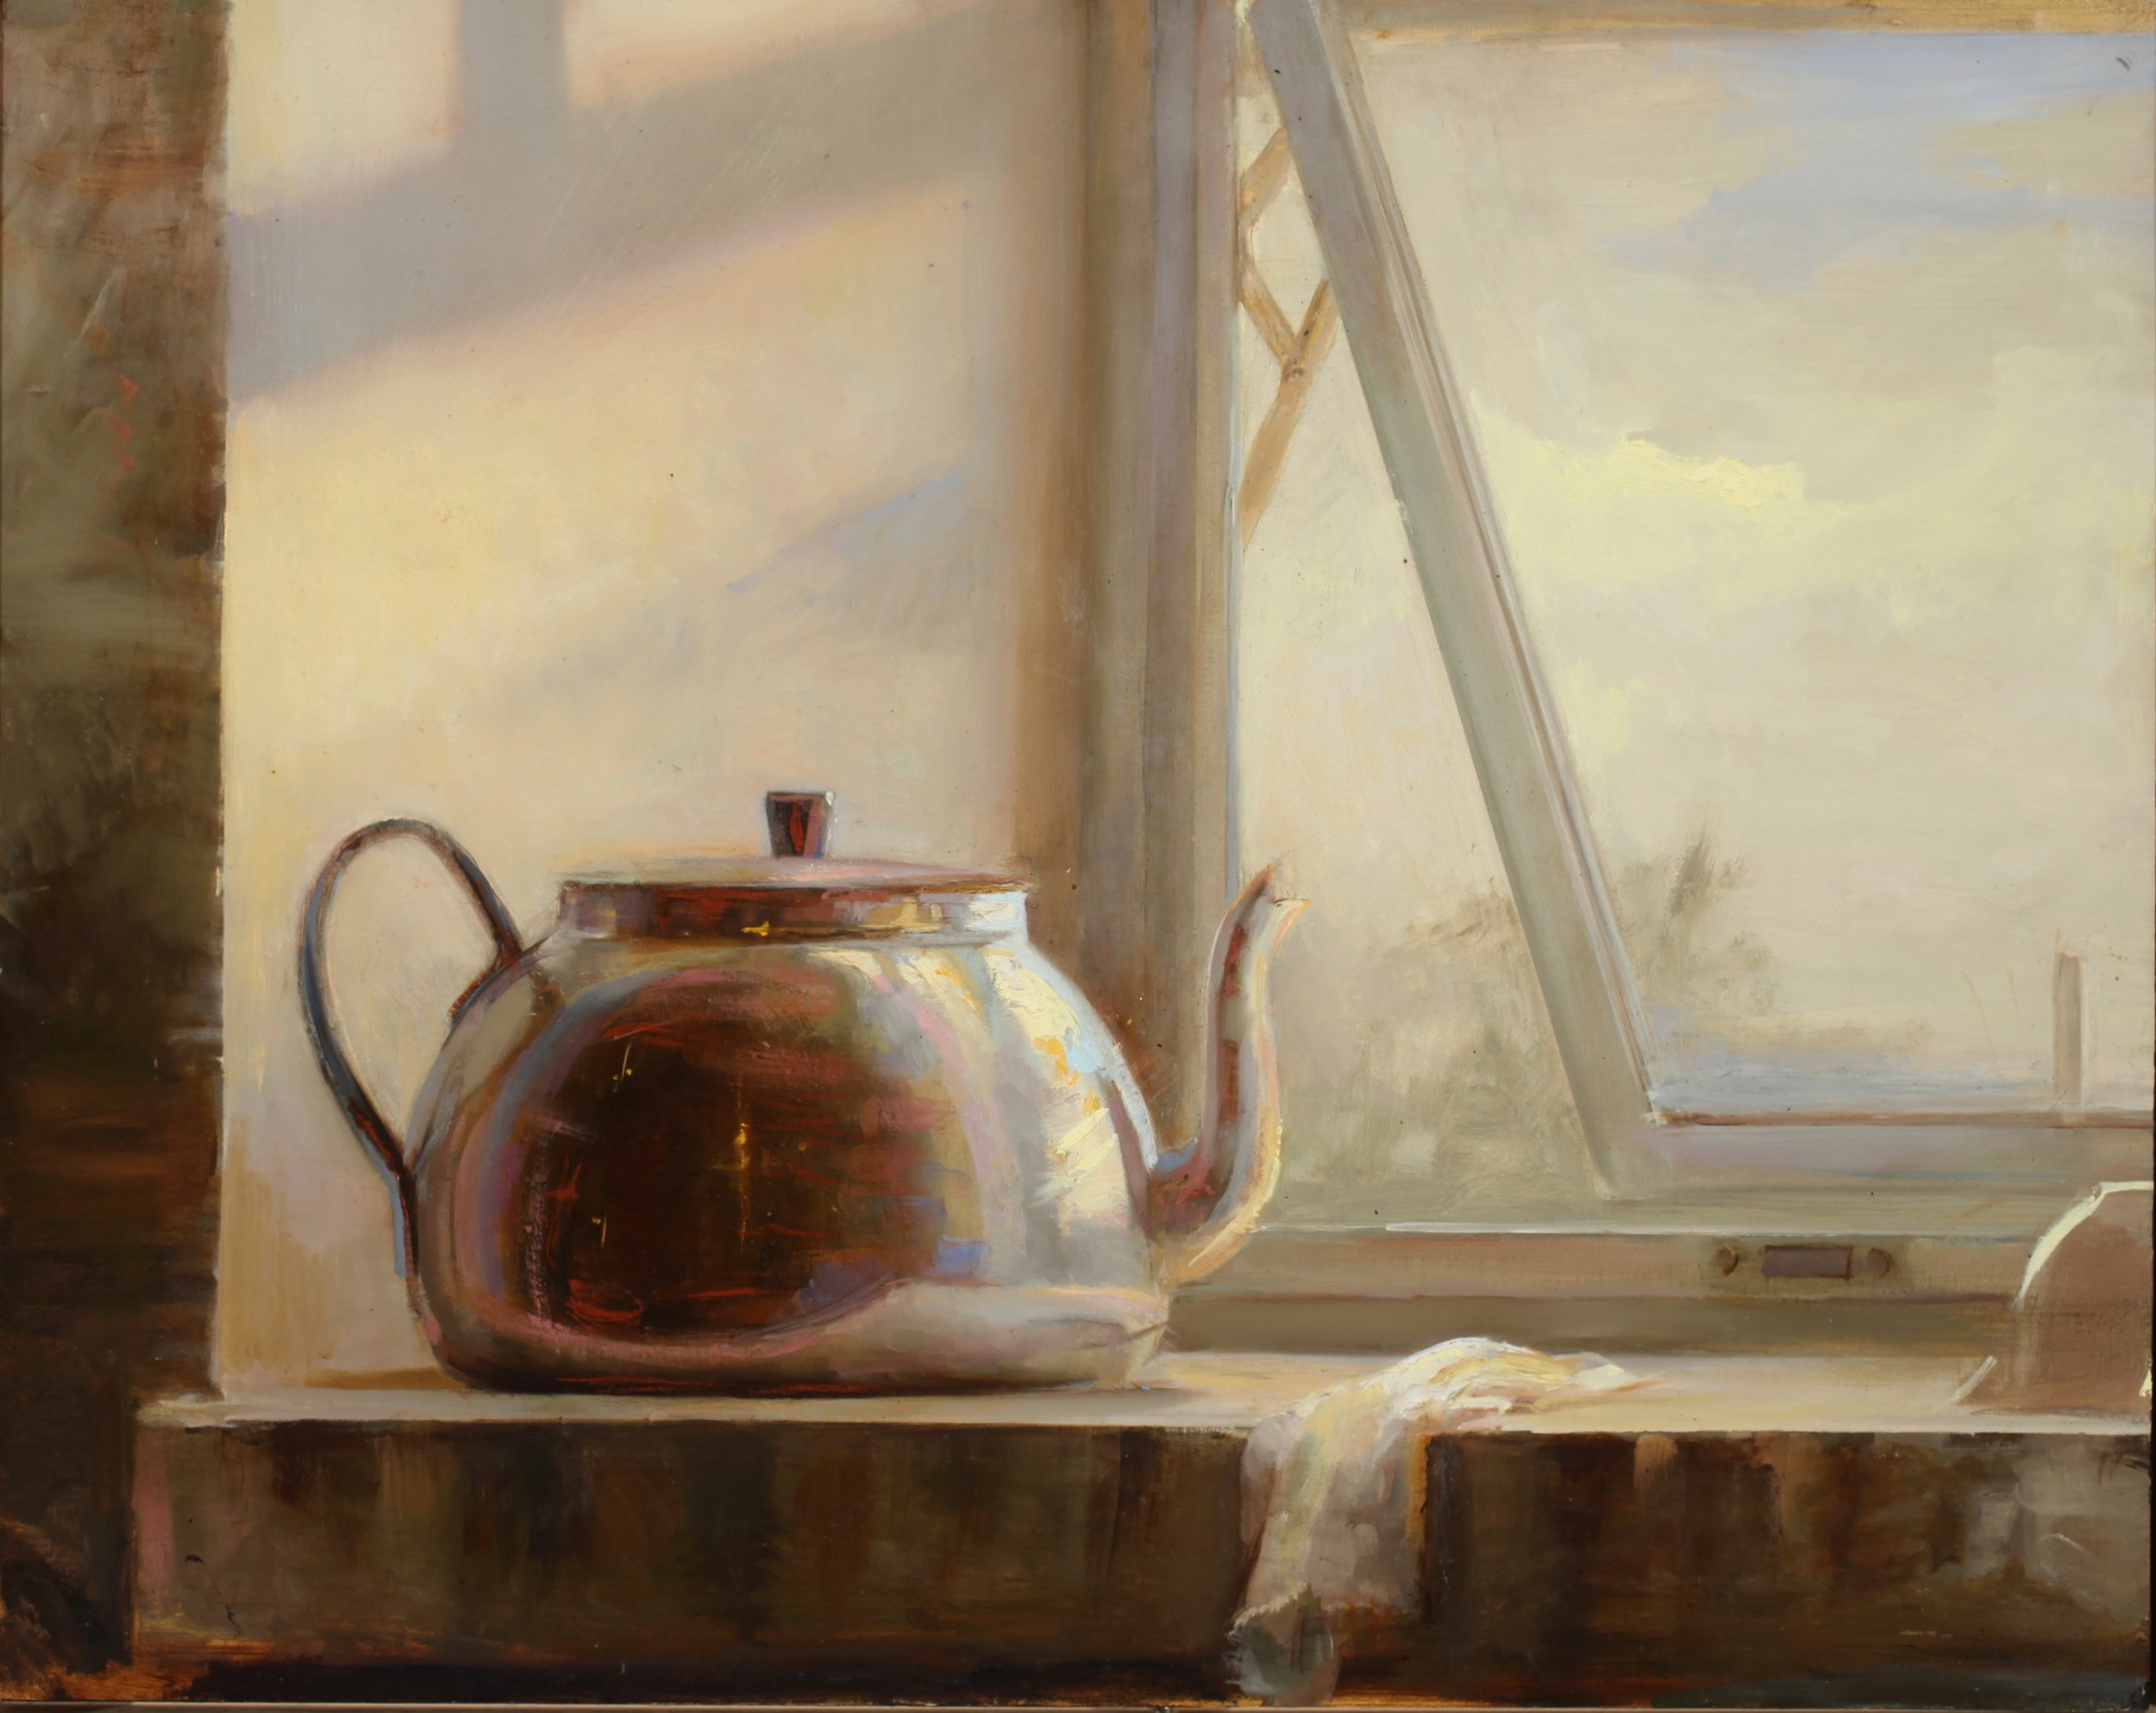 Aristides-The teapot- oil on panel-2018 16x20.jpeg